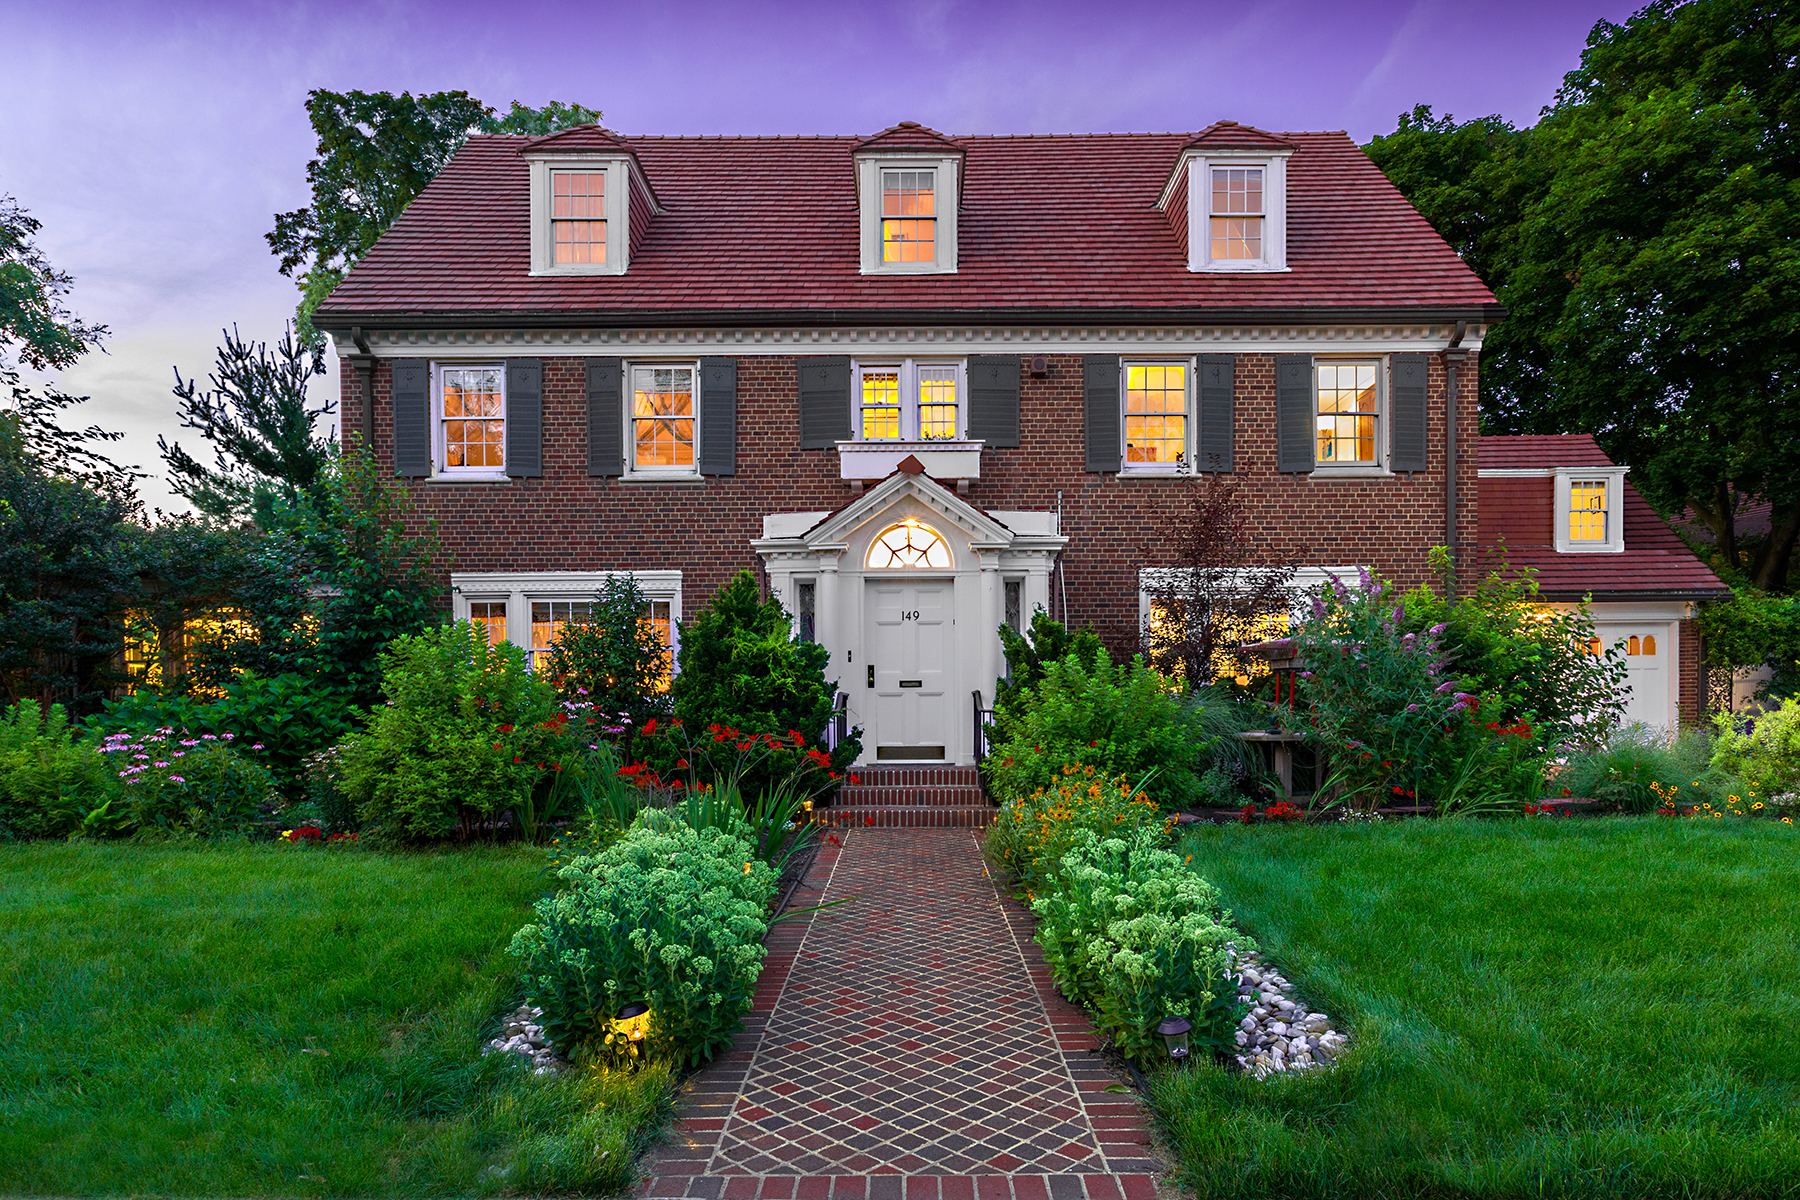 """Single Family Homes for Sale at """"VIRTUAL PERFECTION"""" 149 Slocum Crescent,, Forest Hills Gardens, Forest Hills, New York 11375 United States"""